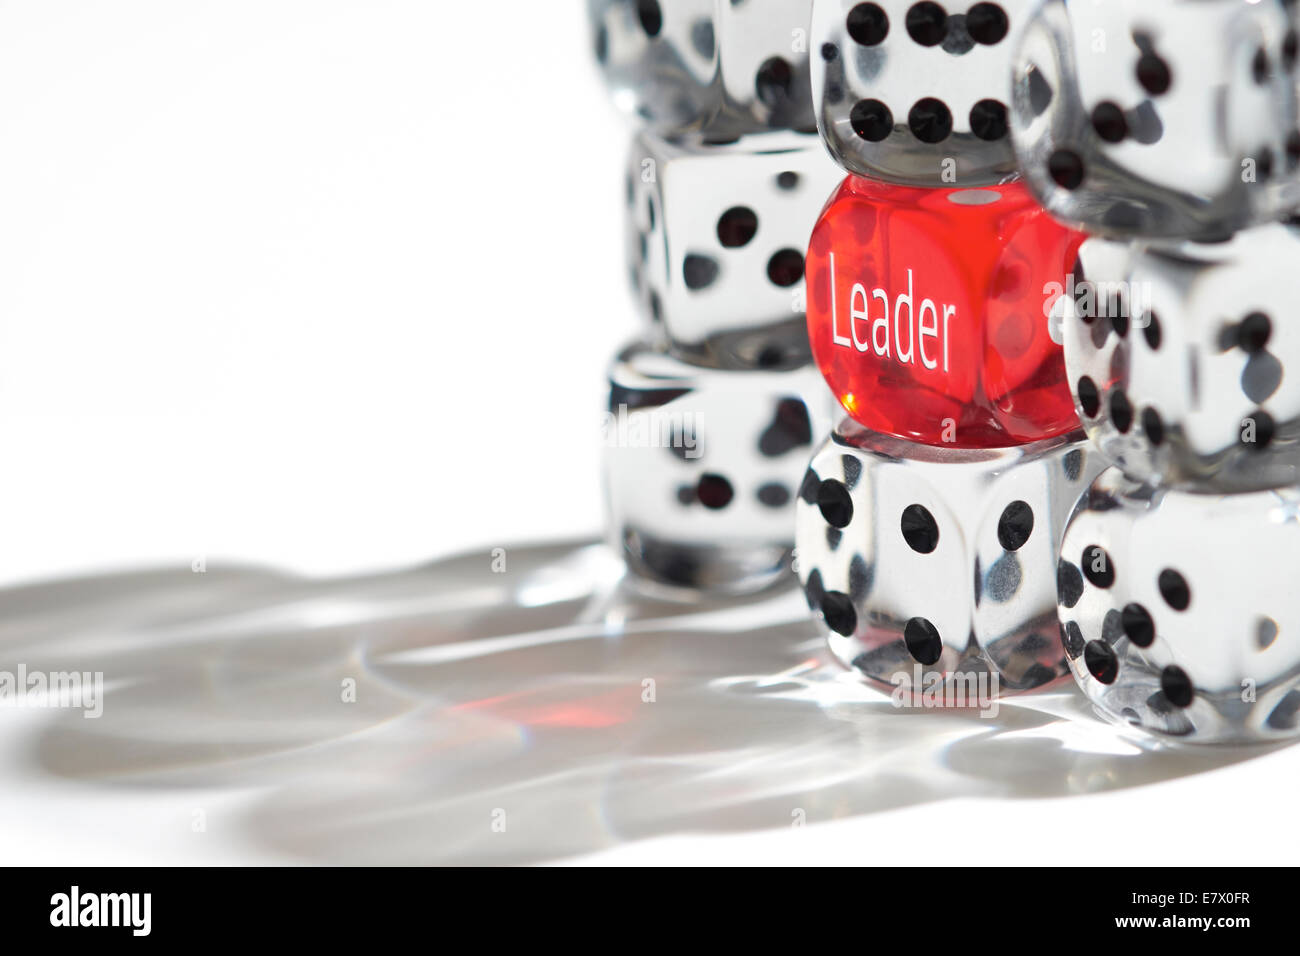 Red Dice Standing out from the crowd, Leader concept. - Stock Image